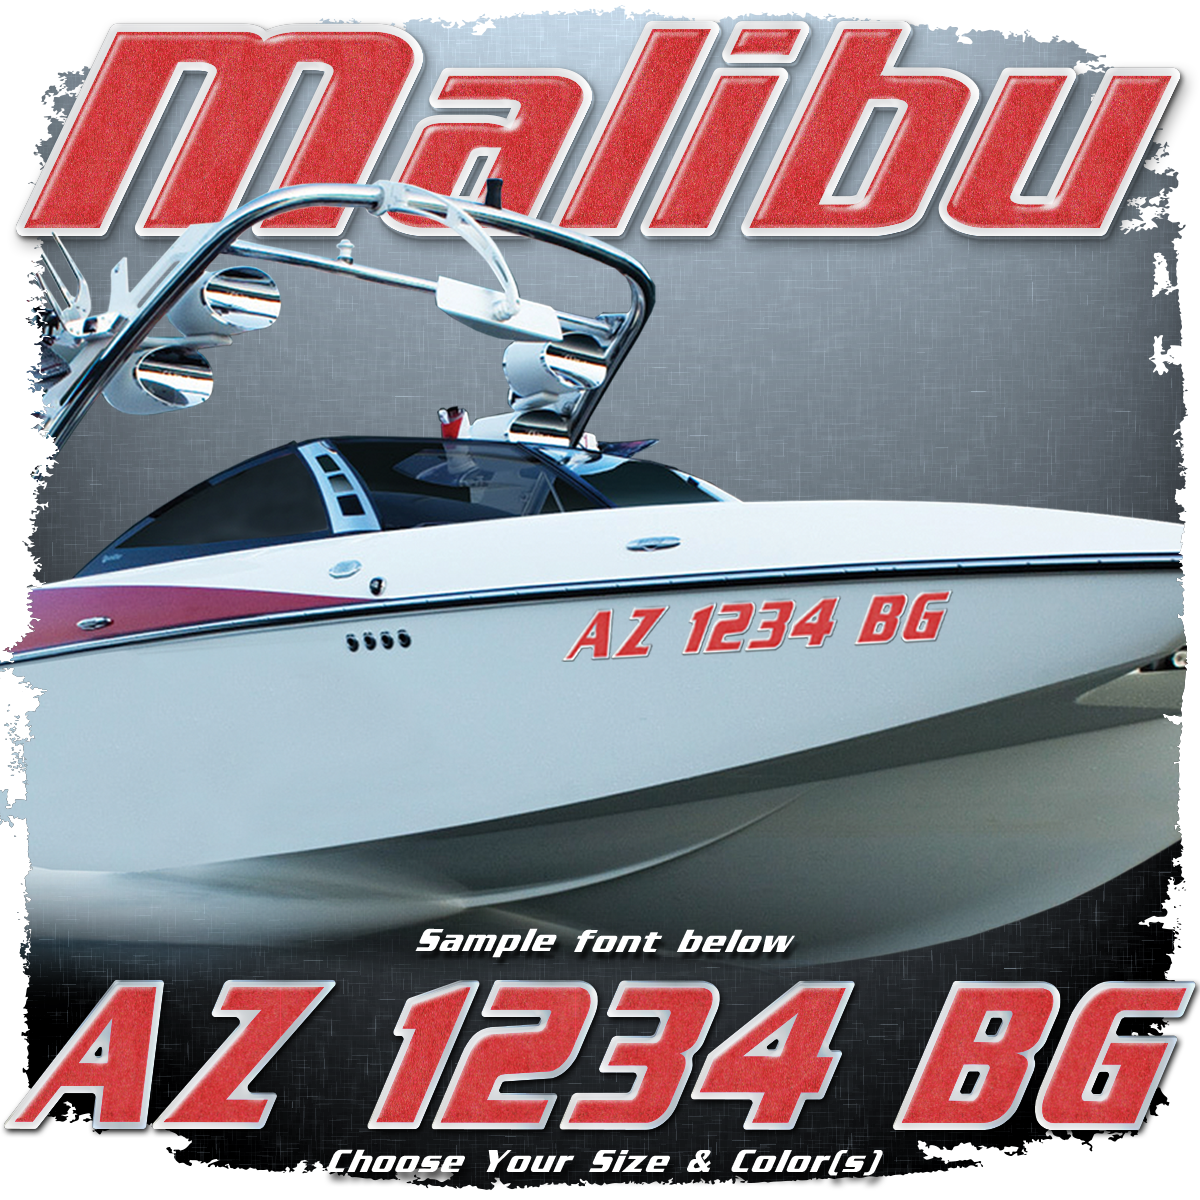 Malibu Registration (2 included), Choose Your Own Colors